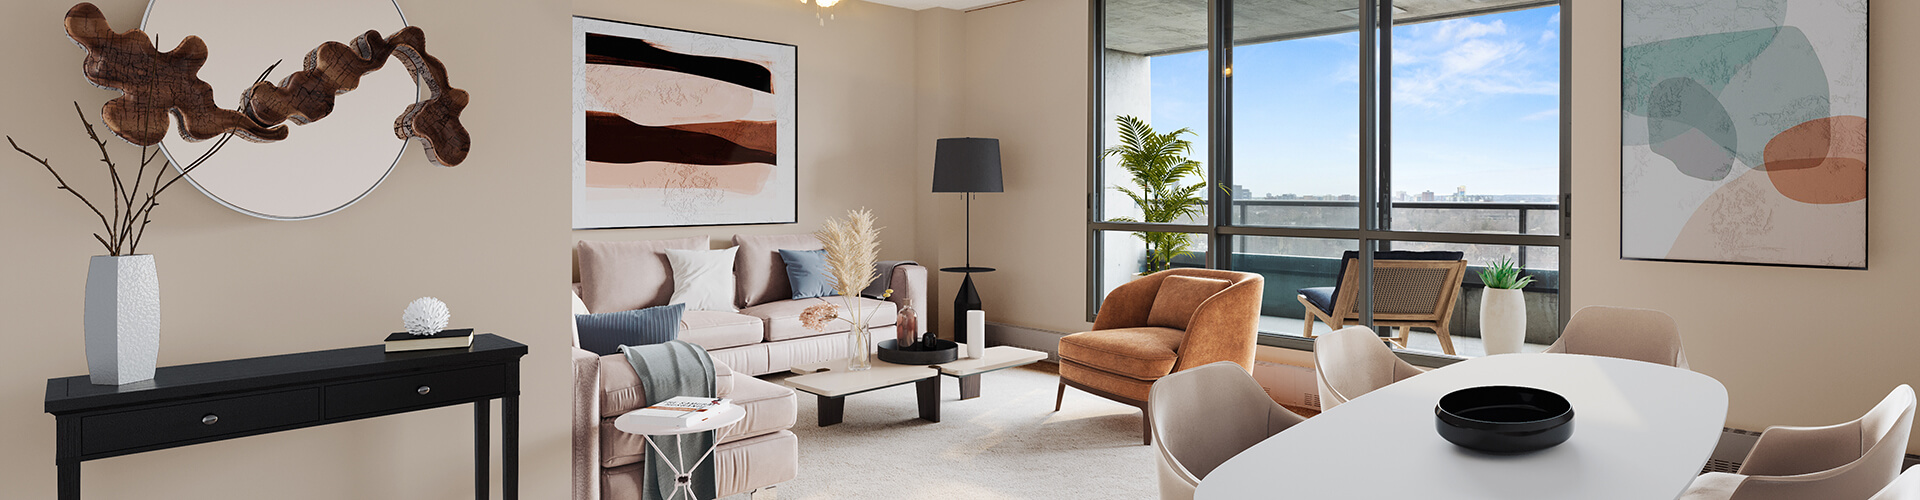 Modern living room at Castleview Apartments in Ottawa. Rent with Minto Apartments.